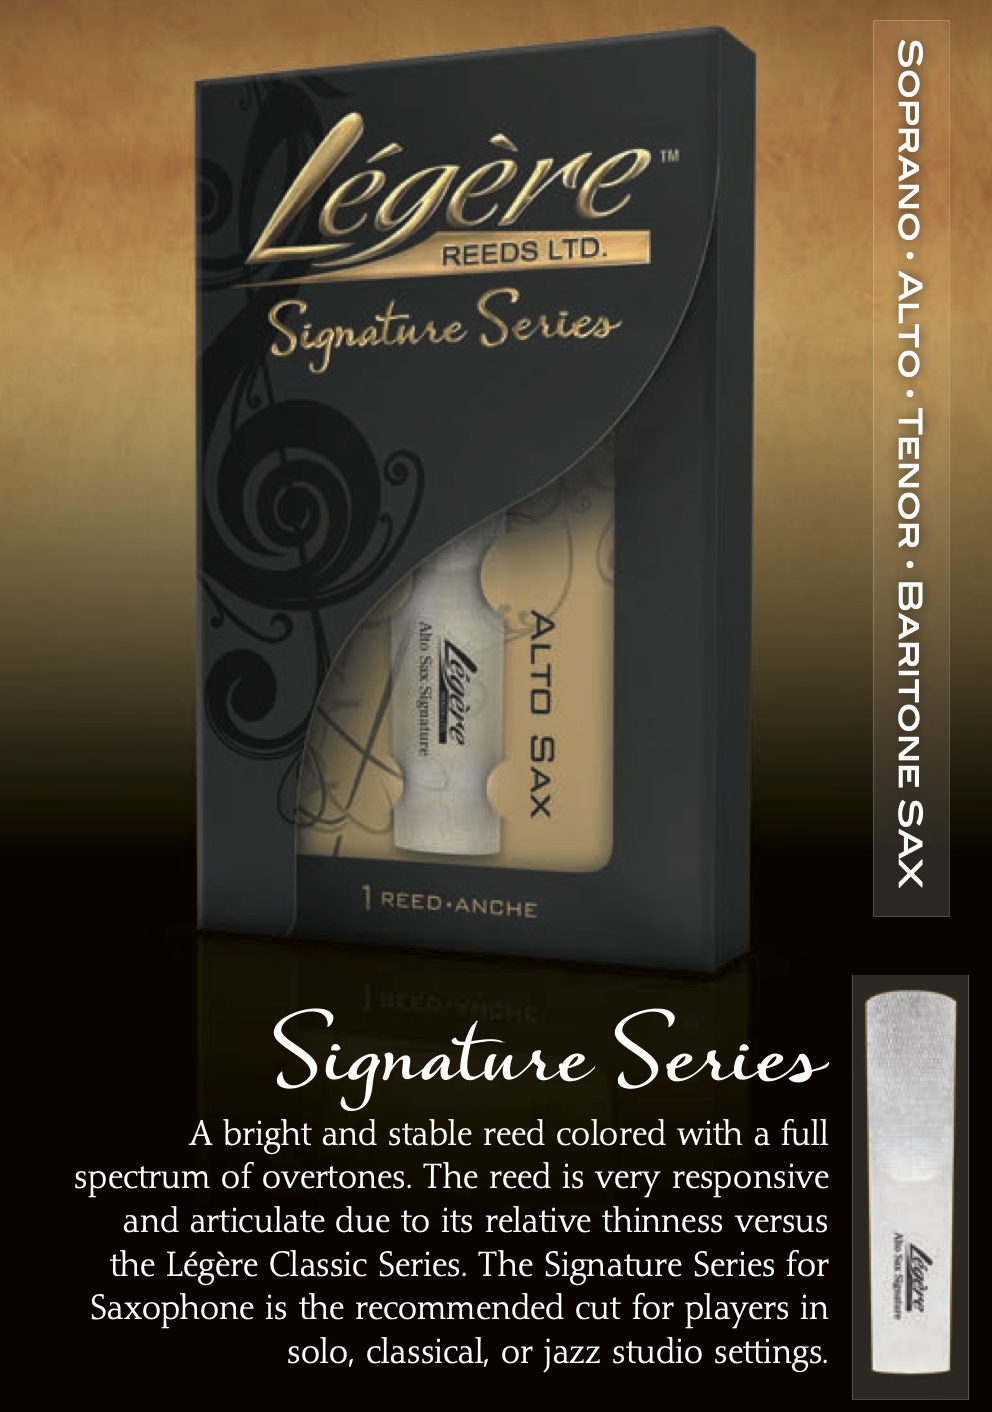 I use the SIGNATURE SERIES Légère Reeds for Alto Saxophone with a Selmer C* mouthpiece